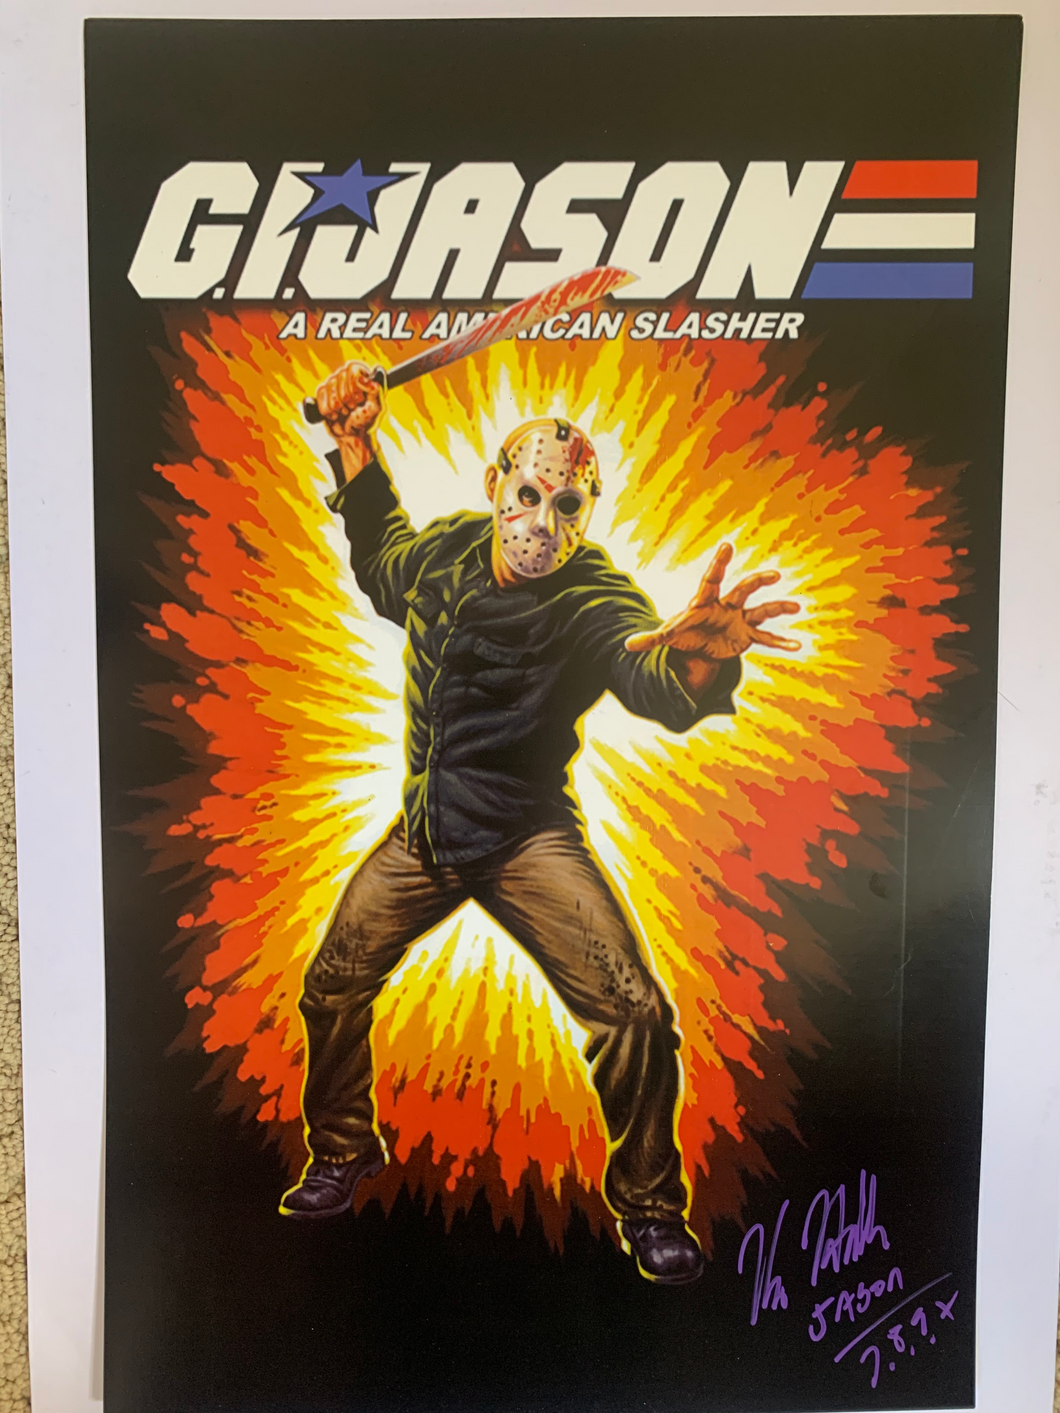 Friday The 13th Kane Hodder signed